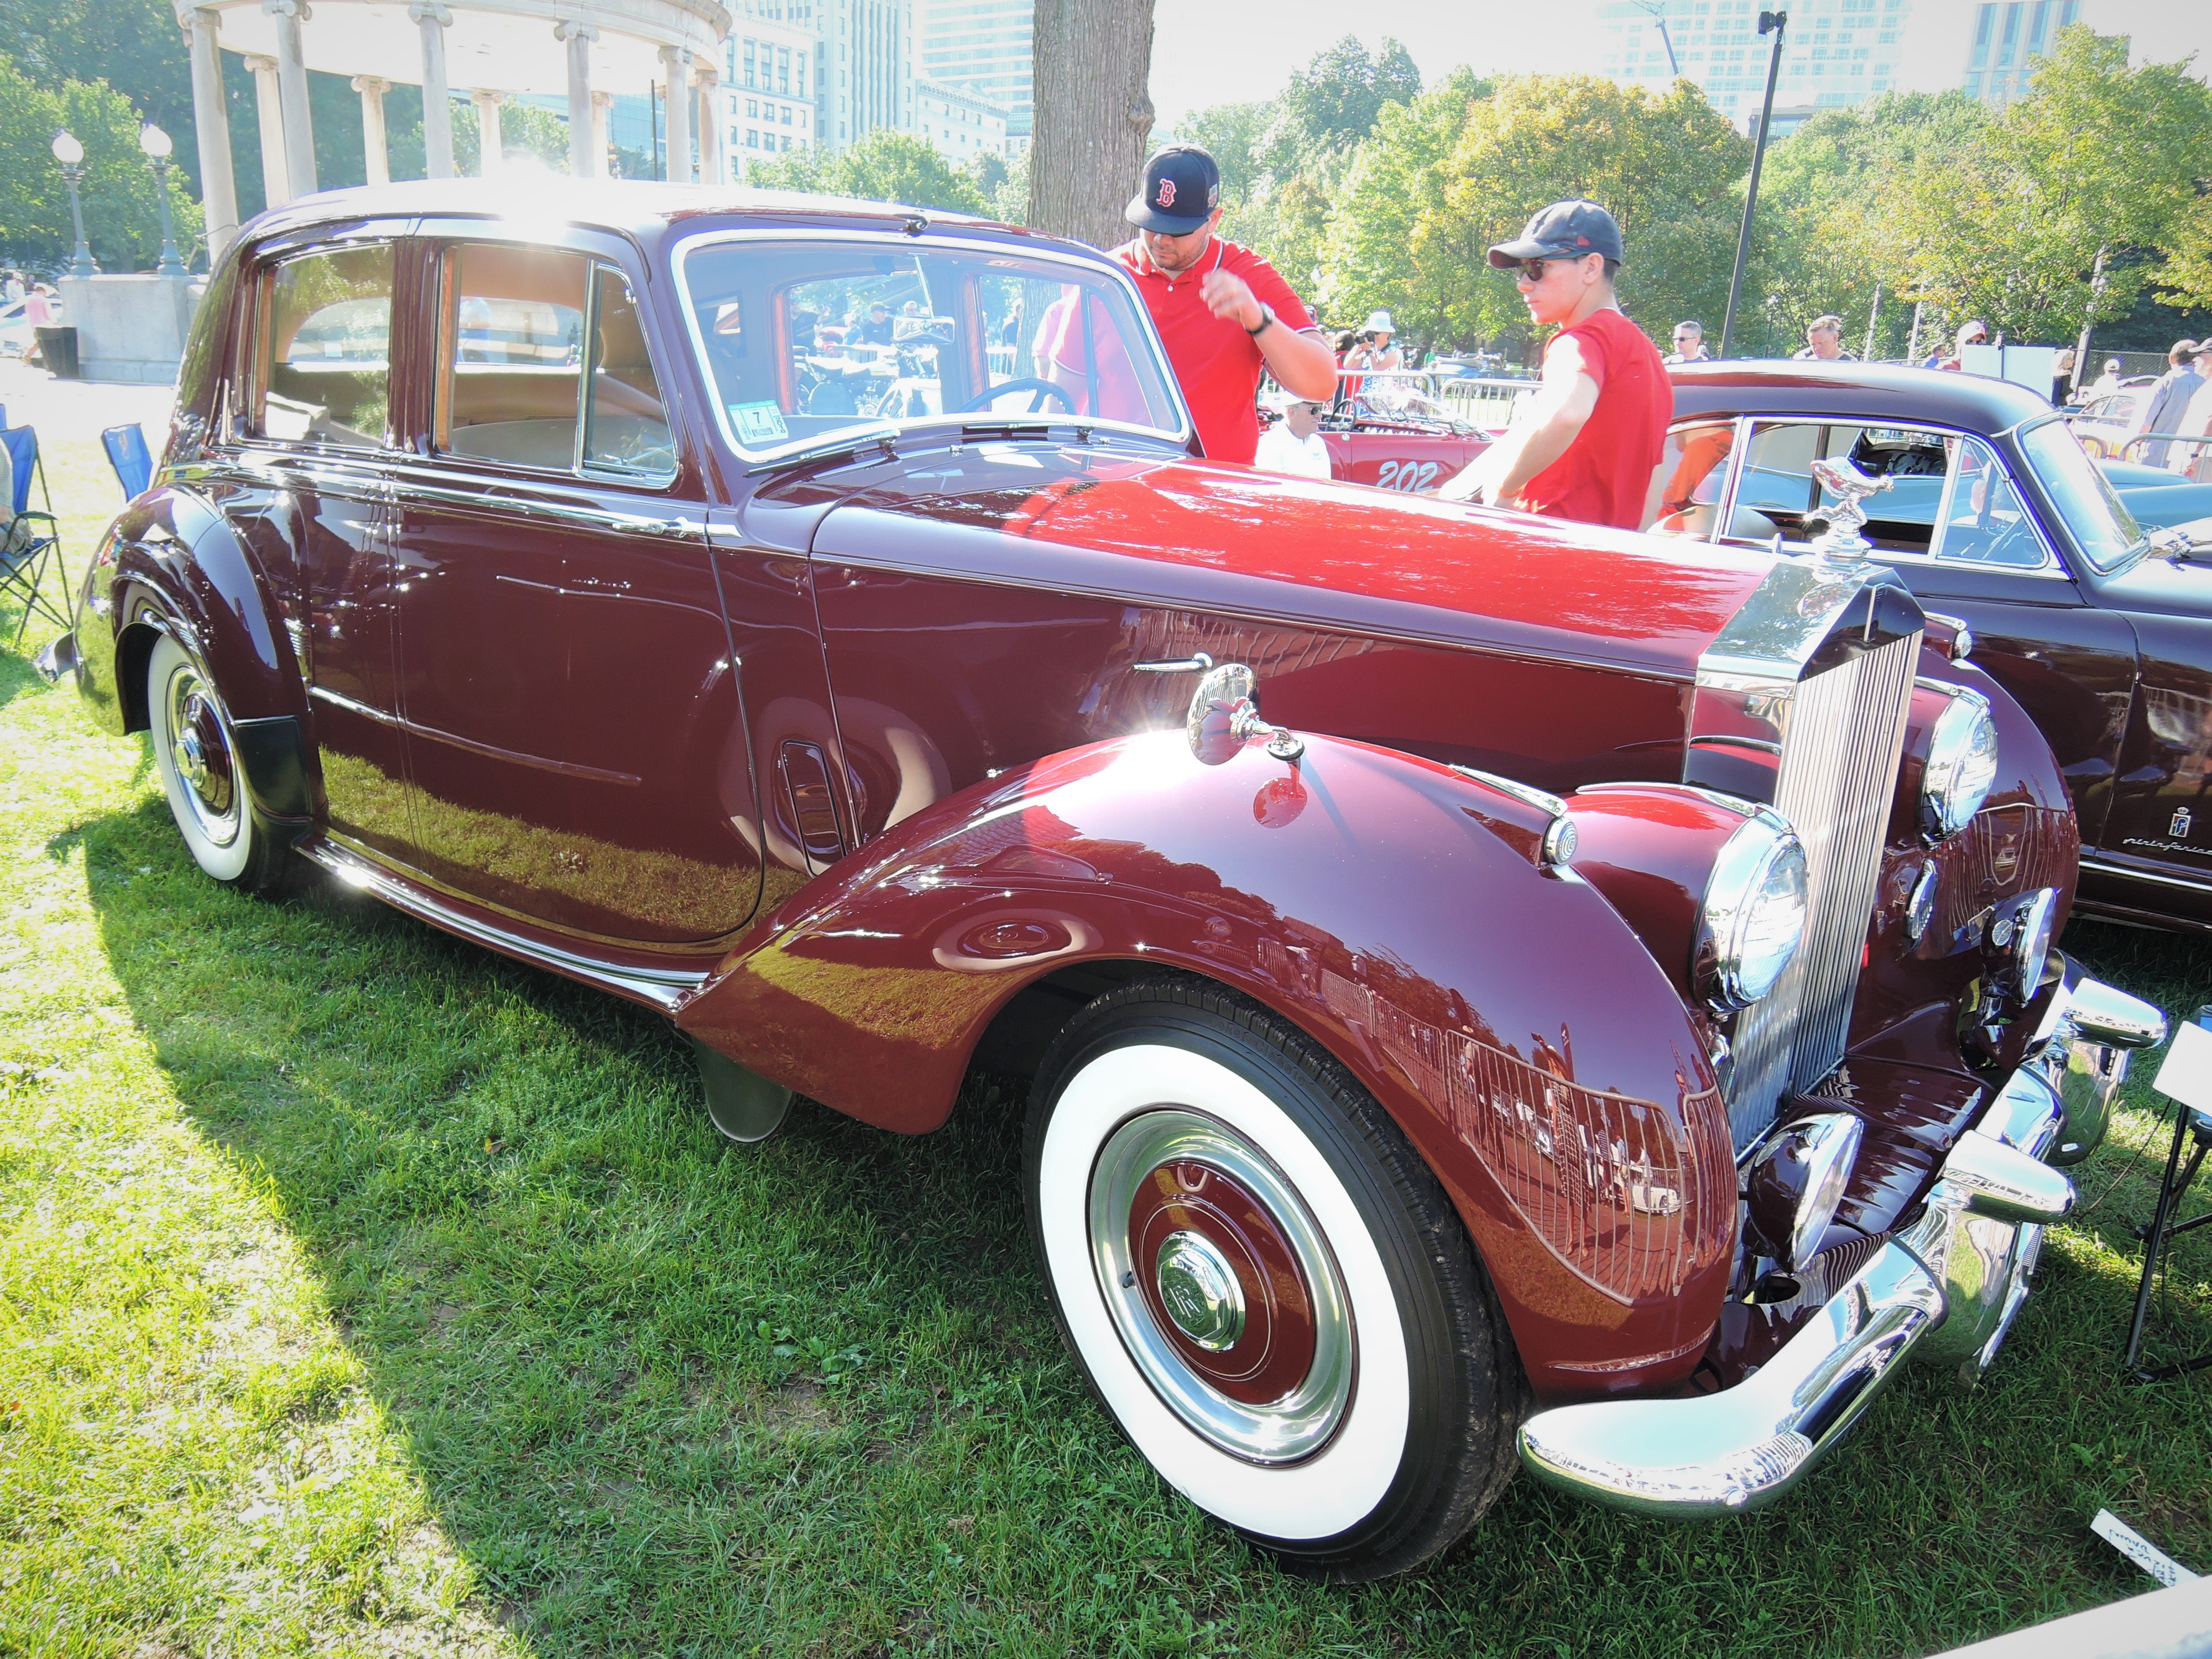 red 1953 Rolls Royce Silver Dawn - The Boston Cup 2017